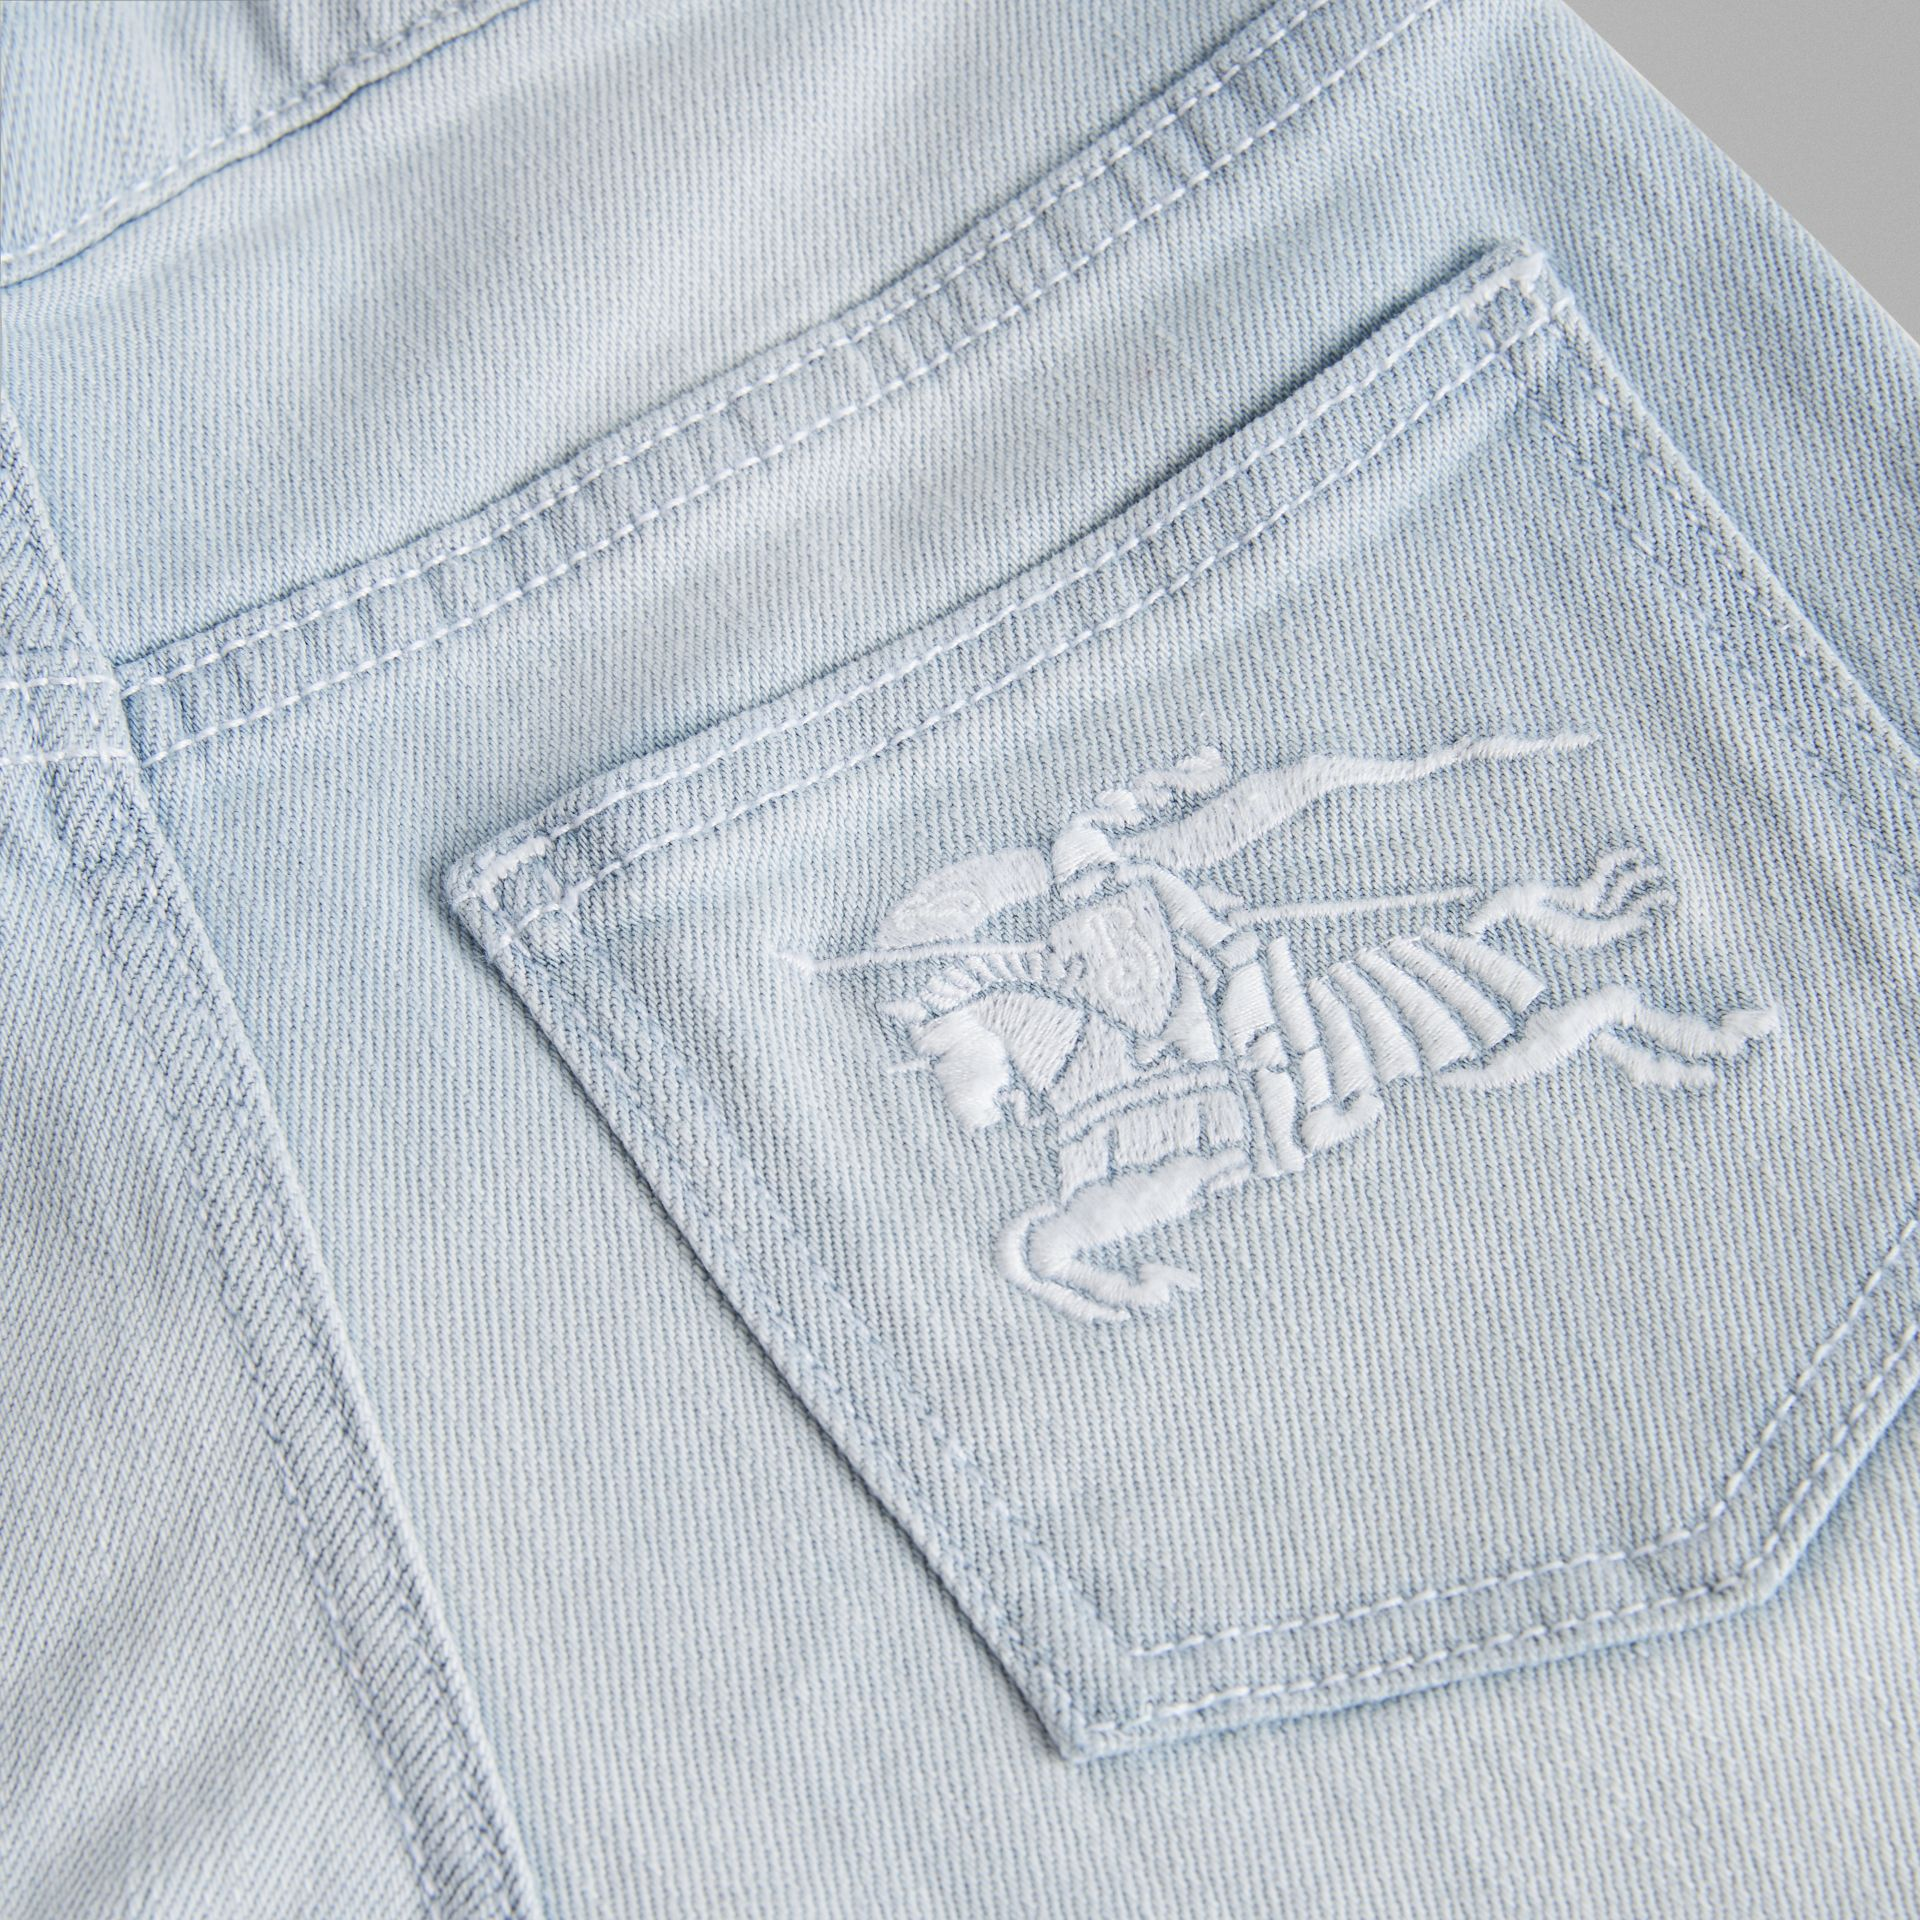 Relaxed Fit Bleached Jeans in Light Blue | Burberry United Kingdom - gallery image 1